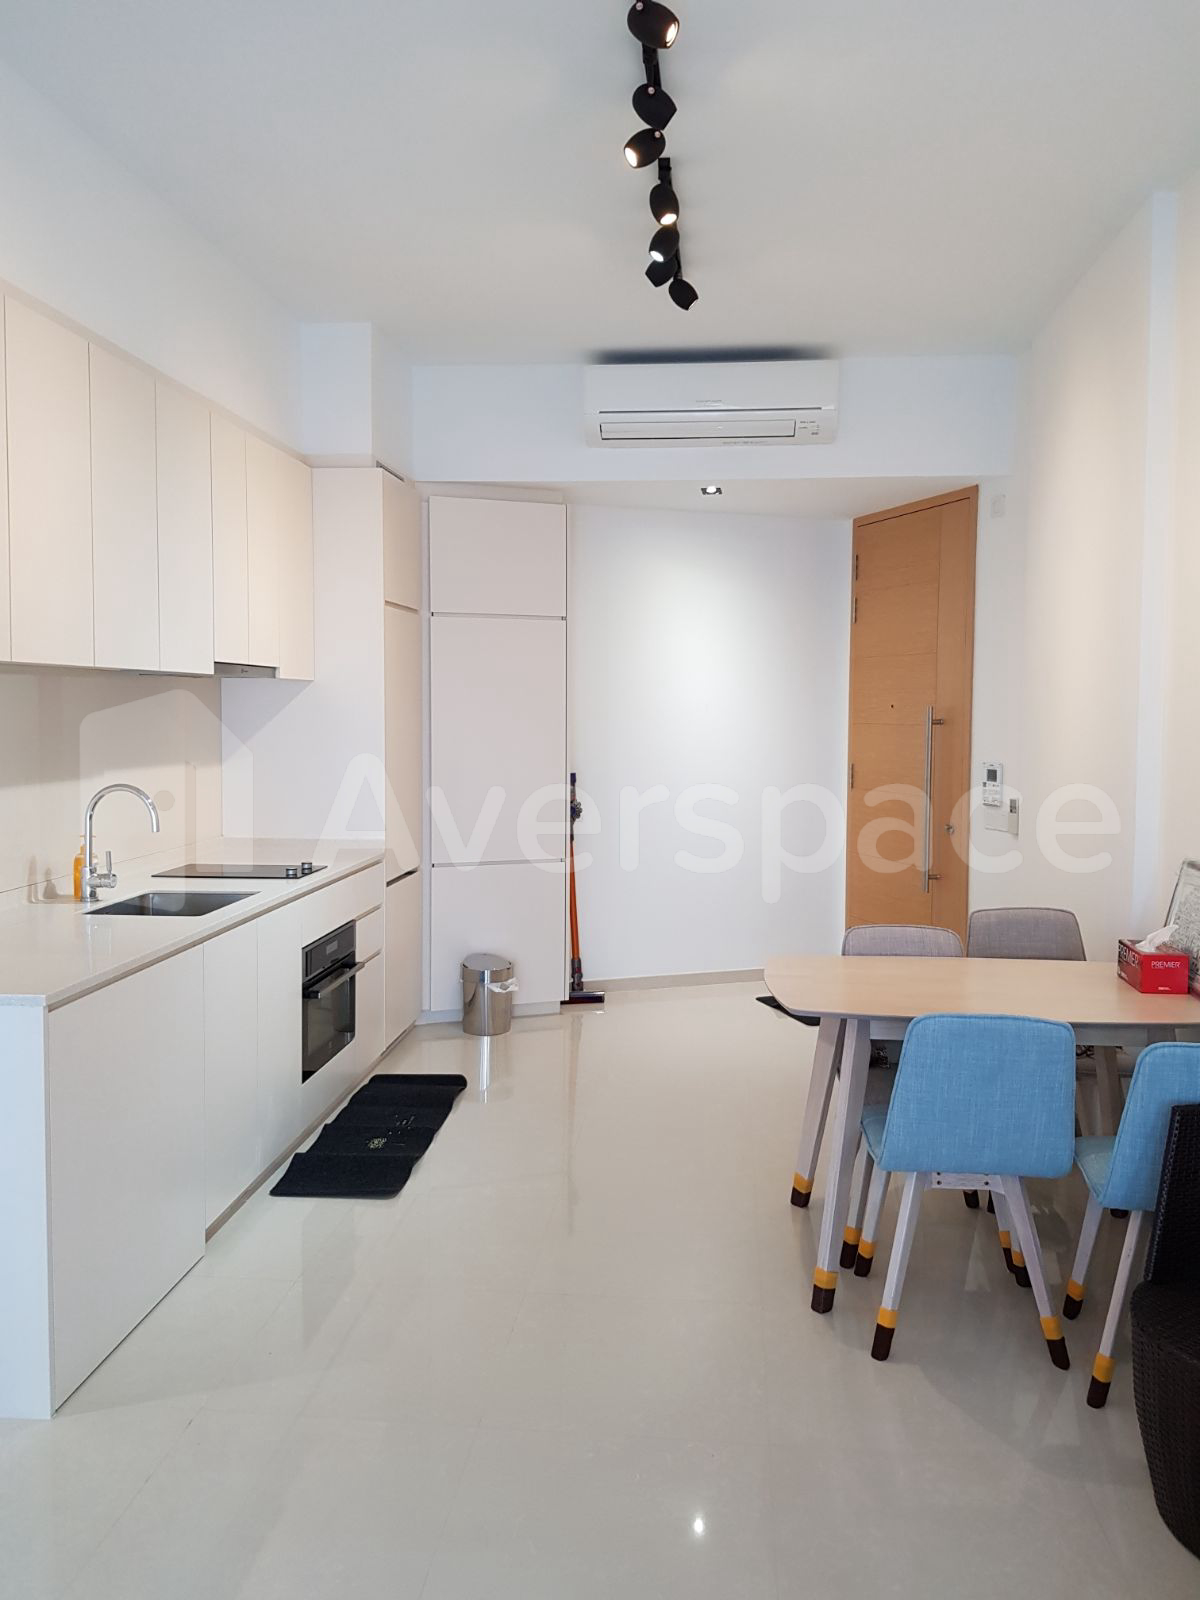 101 Prince Charles Crescent, District 03 Singapore